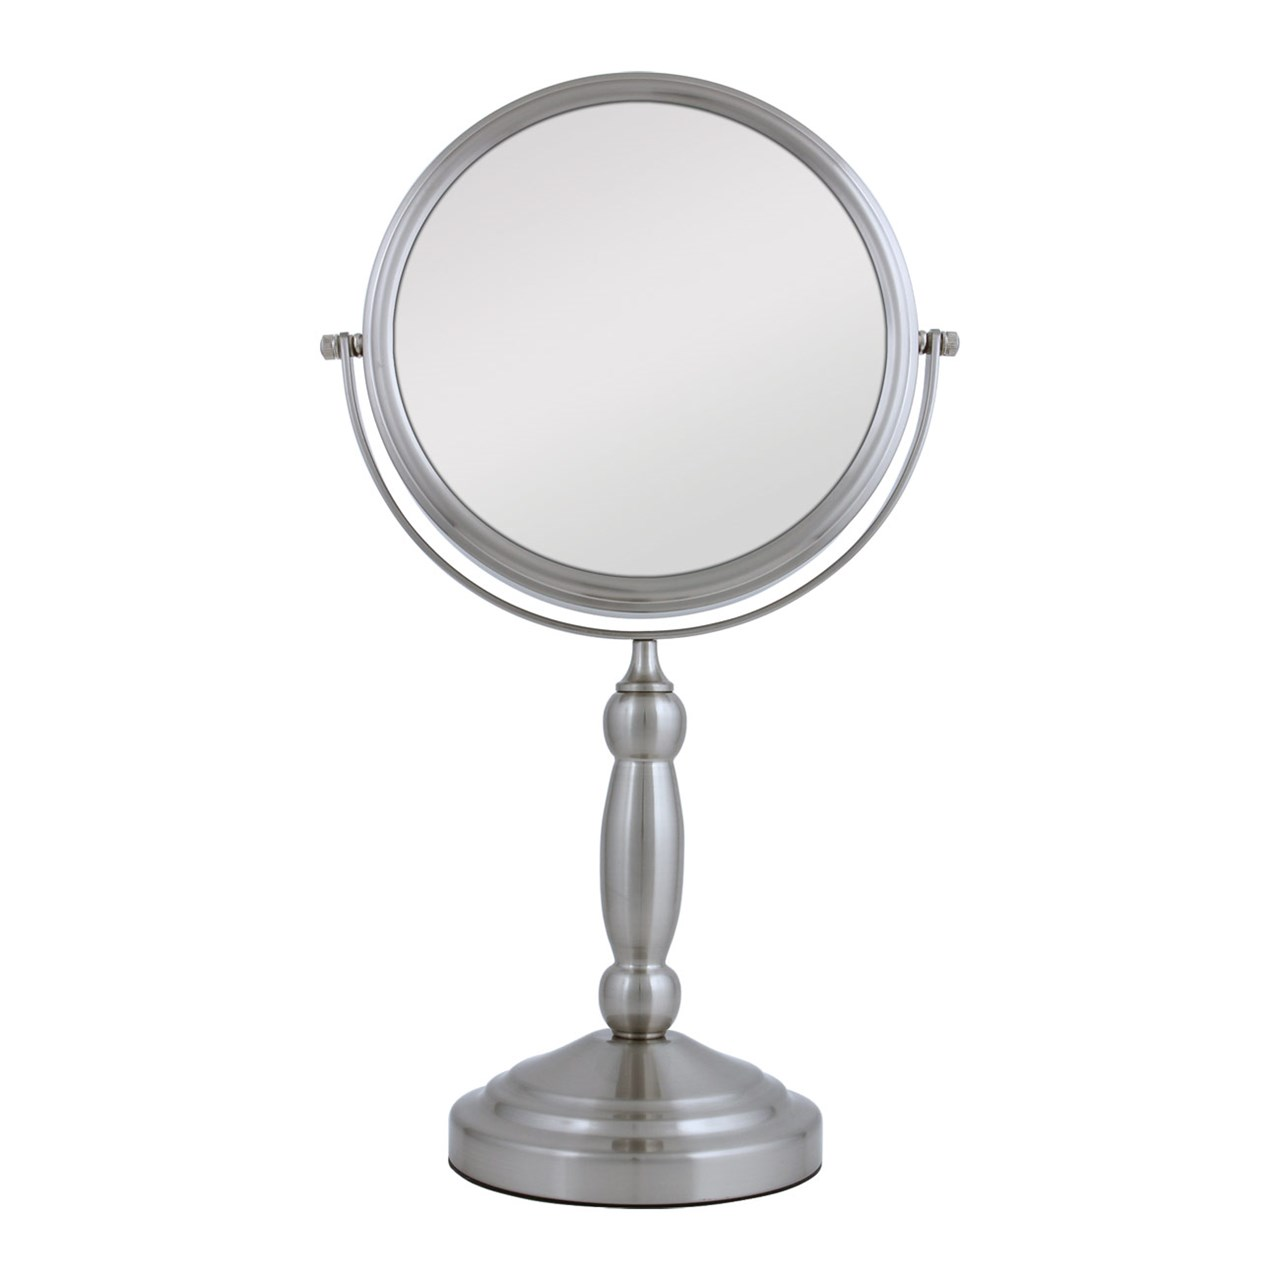 Maxiaids Swivel Vanity Mirror Pedestal Satin Nickel